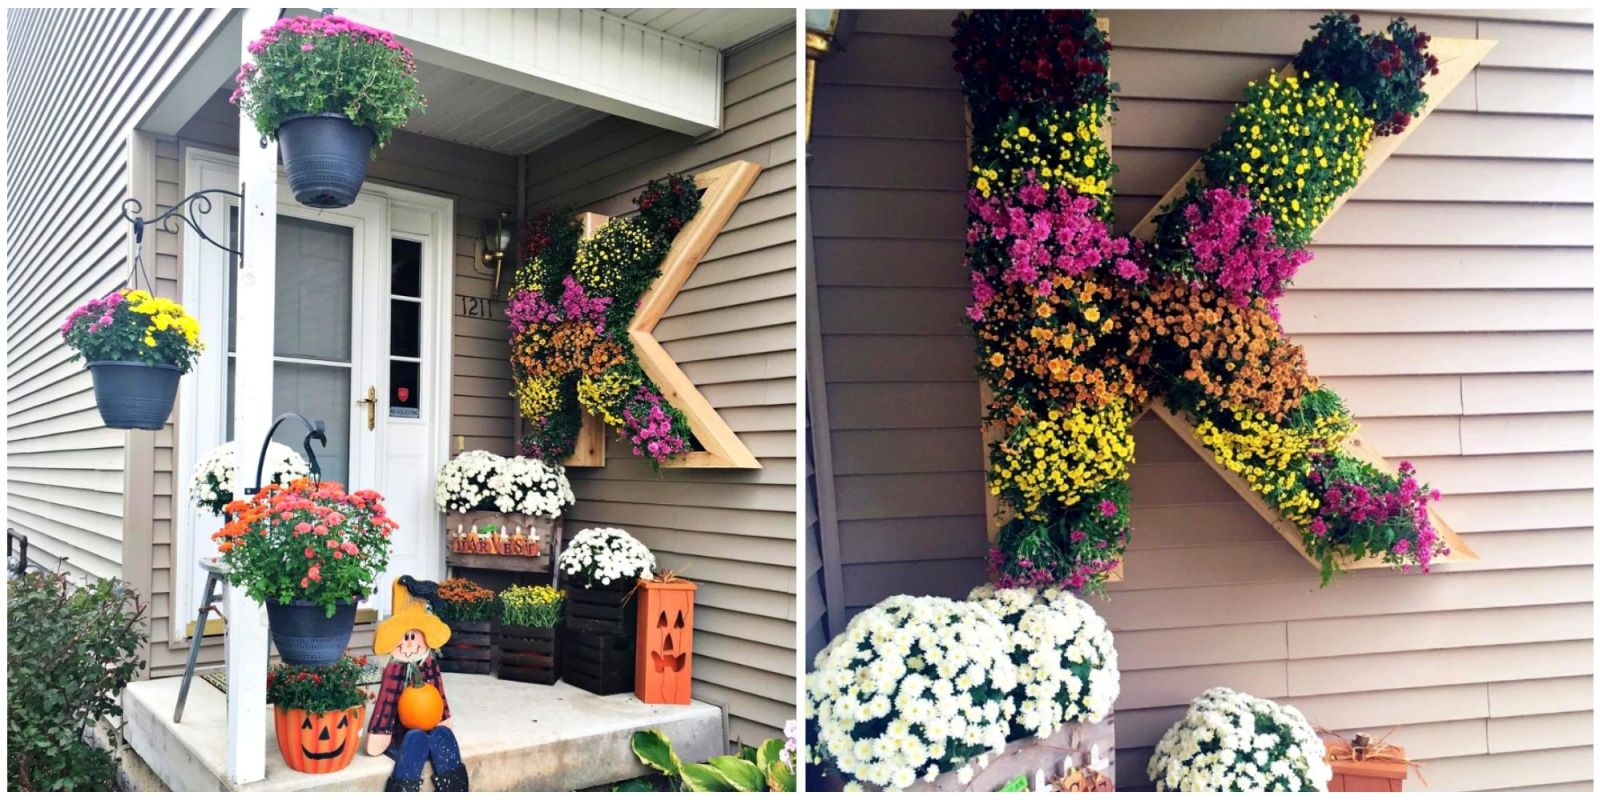 13 Container Gardening Ideas - Potted Plant Ideas We Love